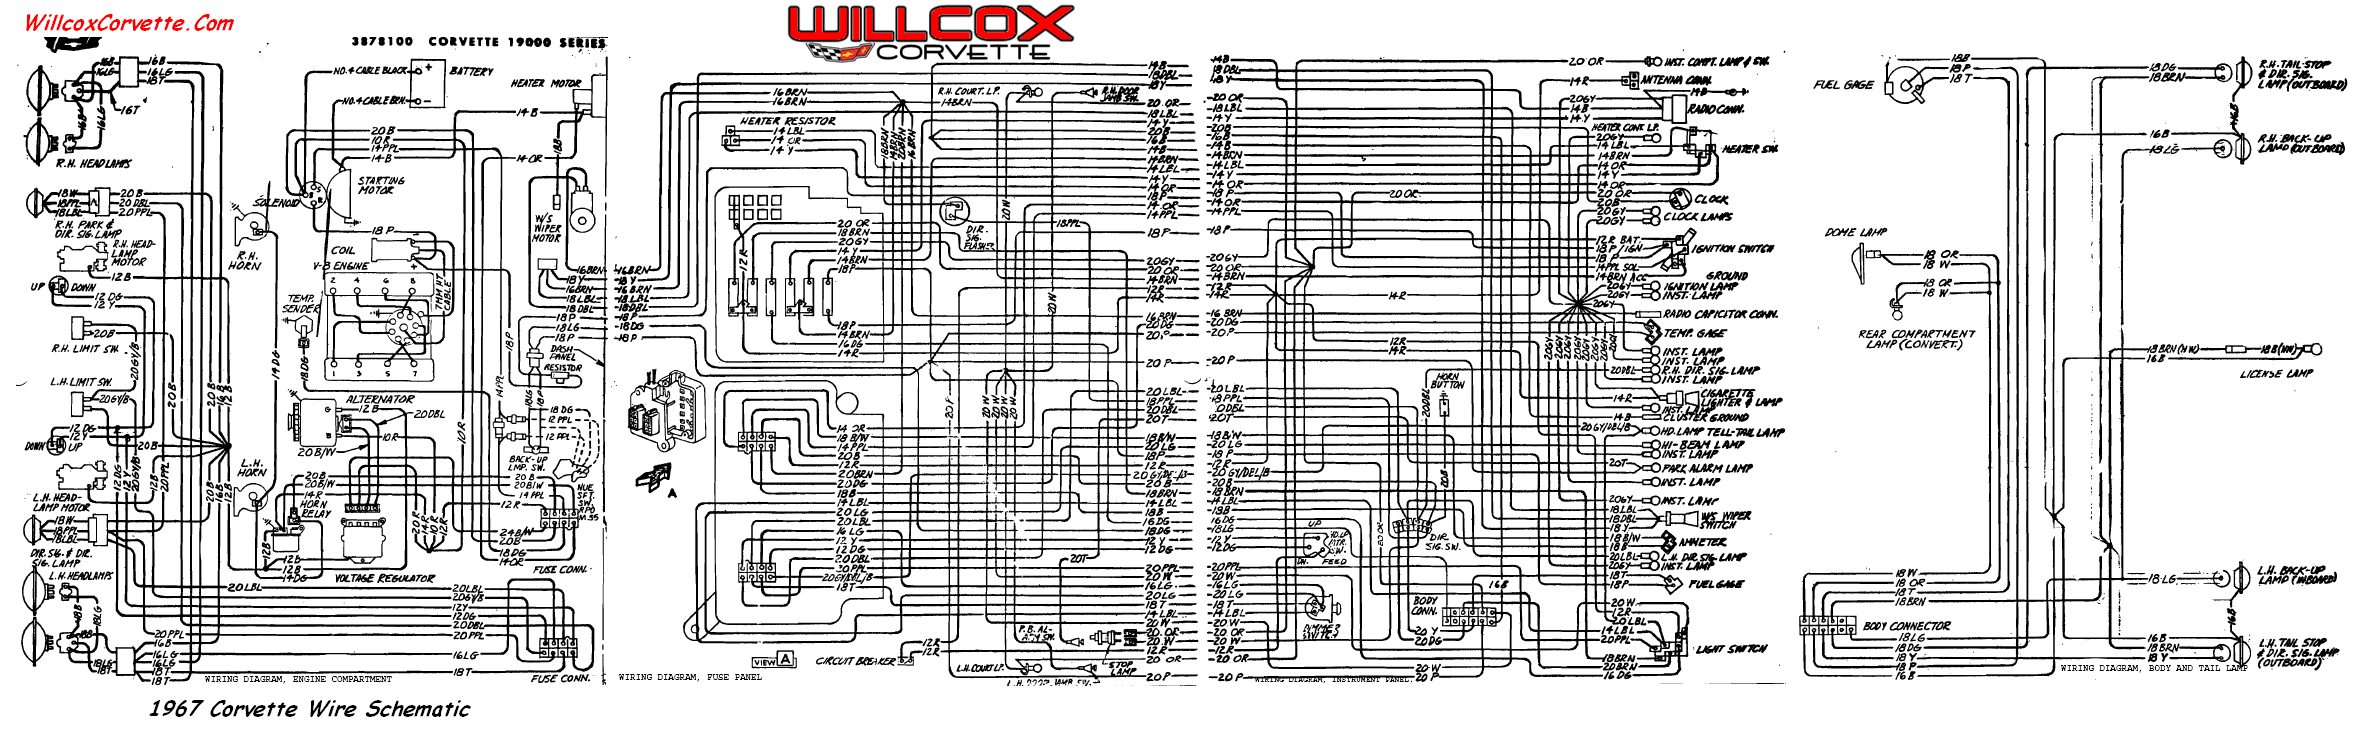 1973 Corvette Wiring Schematics On 1973 Download Wirning Diagrams – John Deere X485 Wiring Diagram